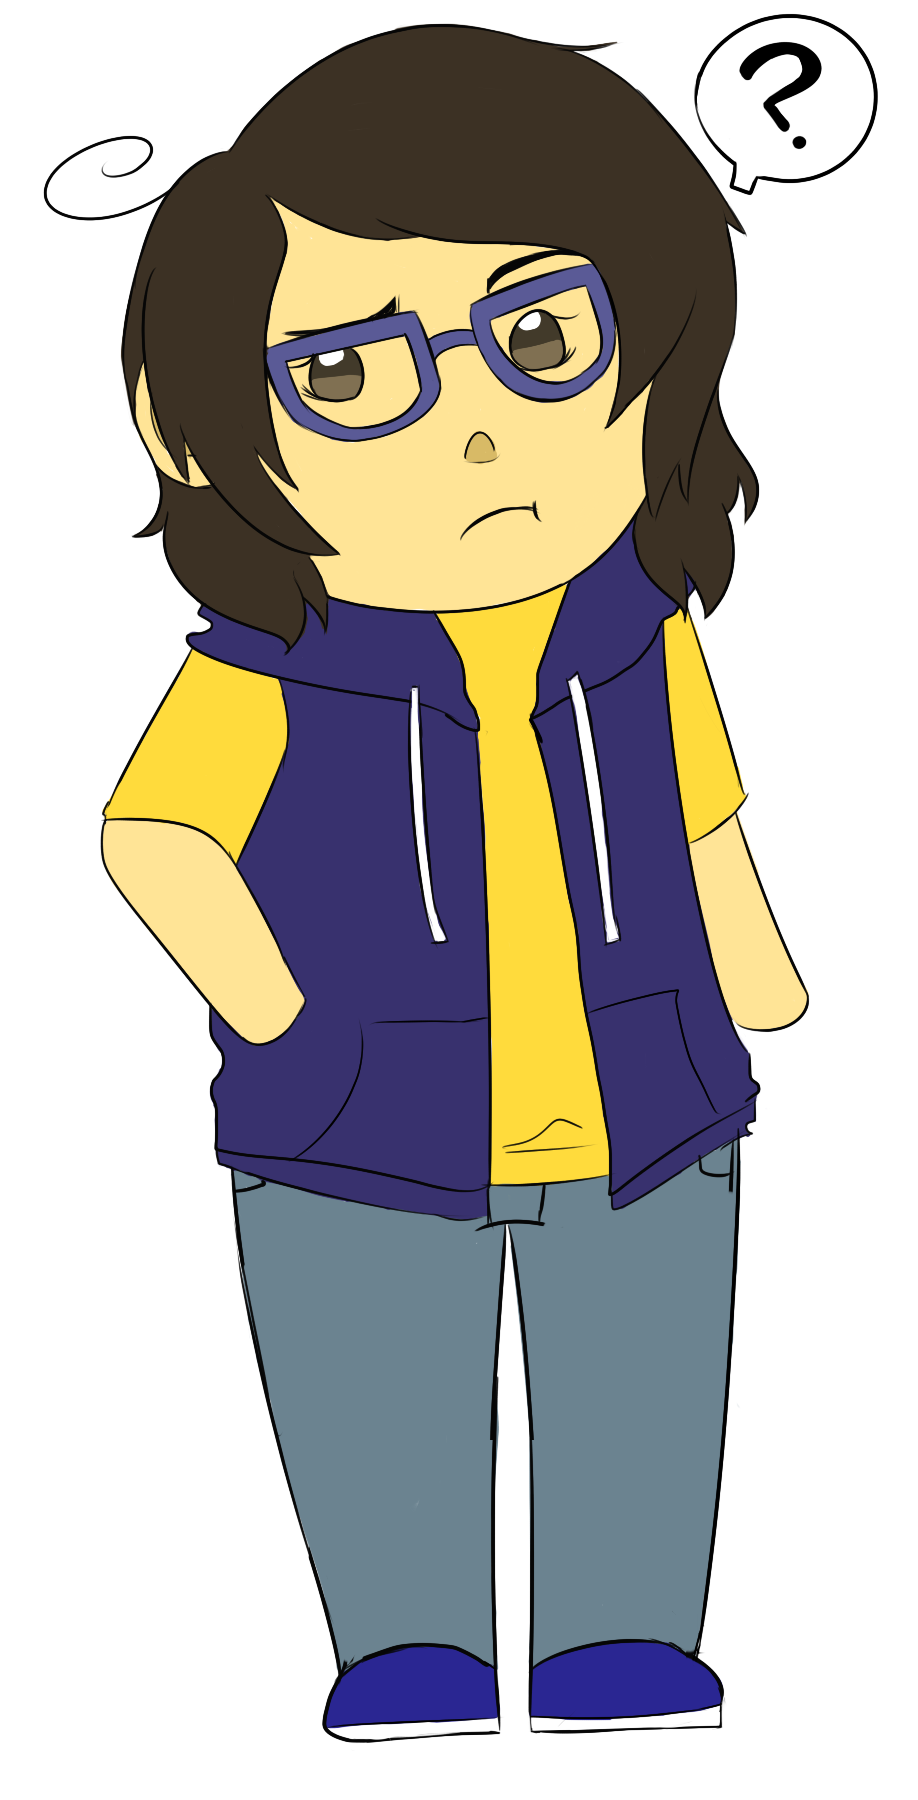 ShadowKnightSociety's Profile Picture